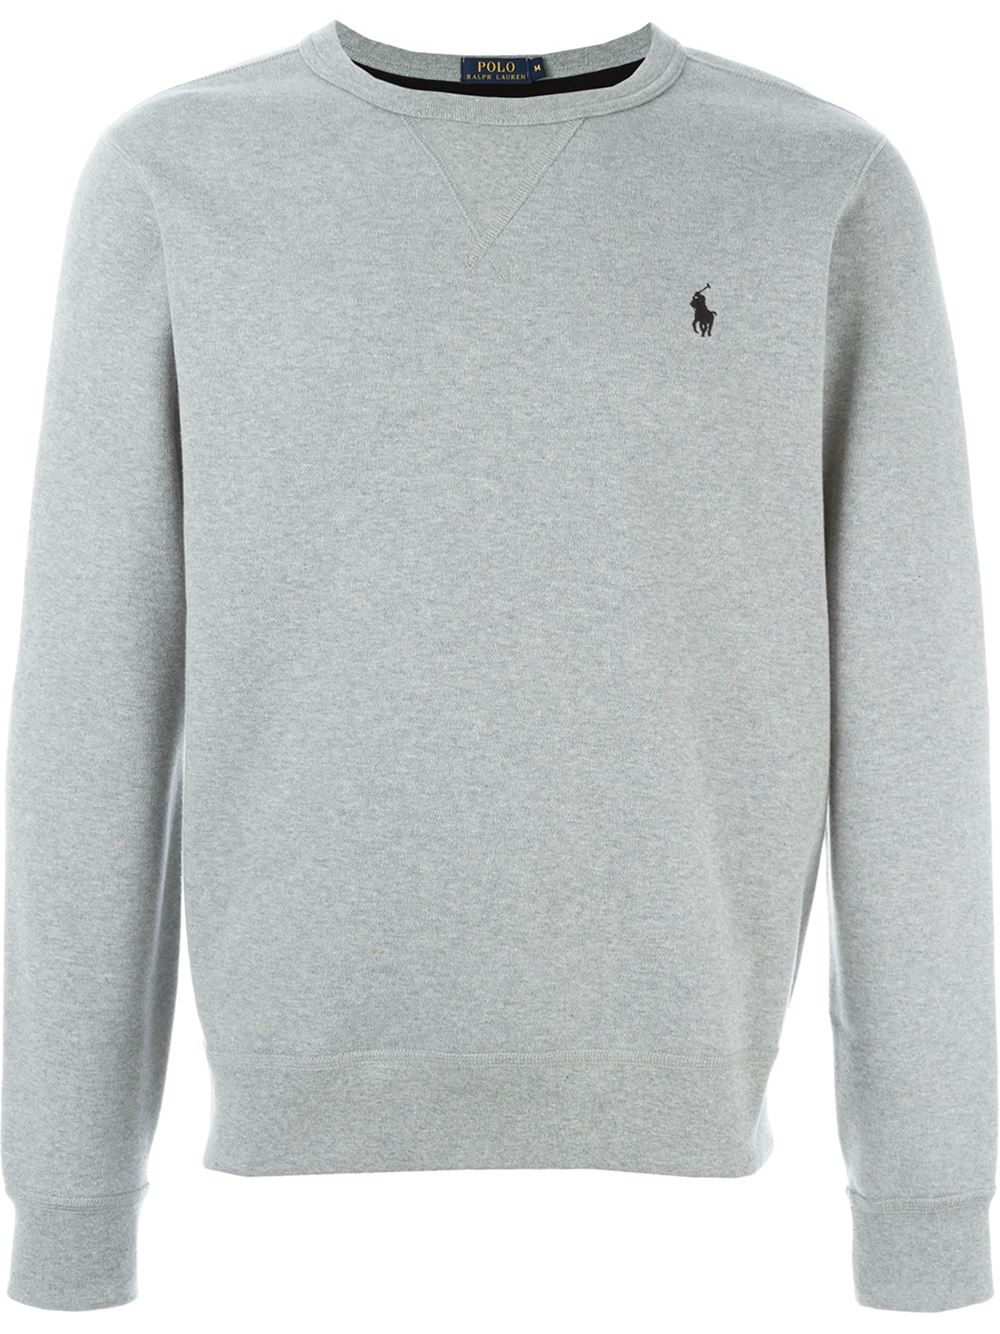 lyst polo ralph lauren crew neck sweatshirt in gray for men. Black Bedroom Furniture Sets. Home Design Ideas